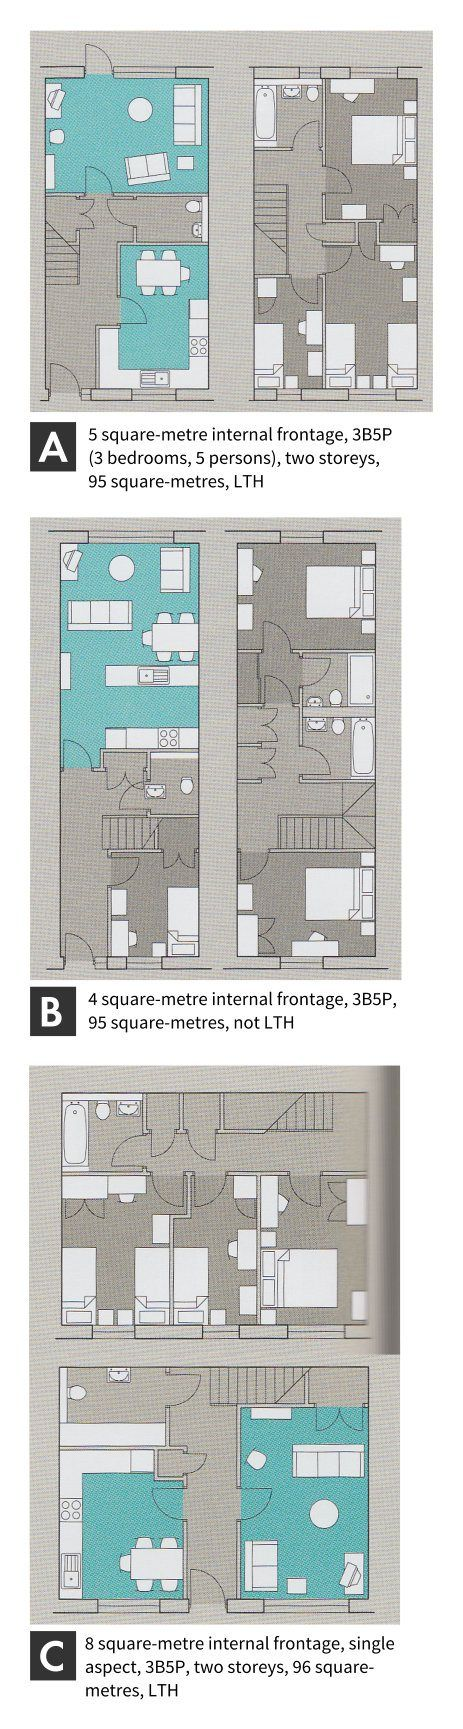 The three floor plans from The Housing Design Handbook